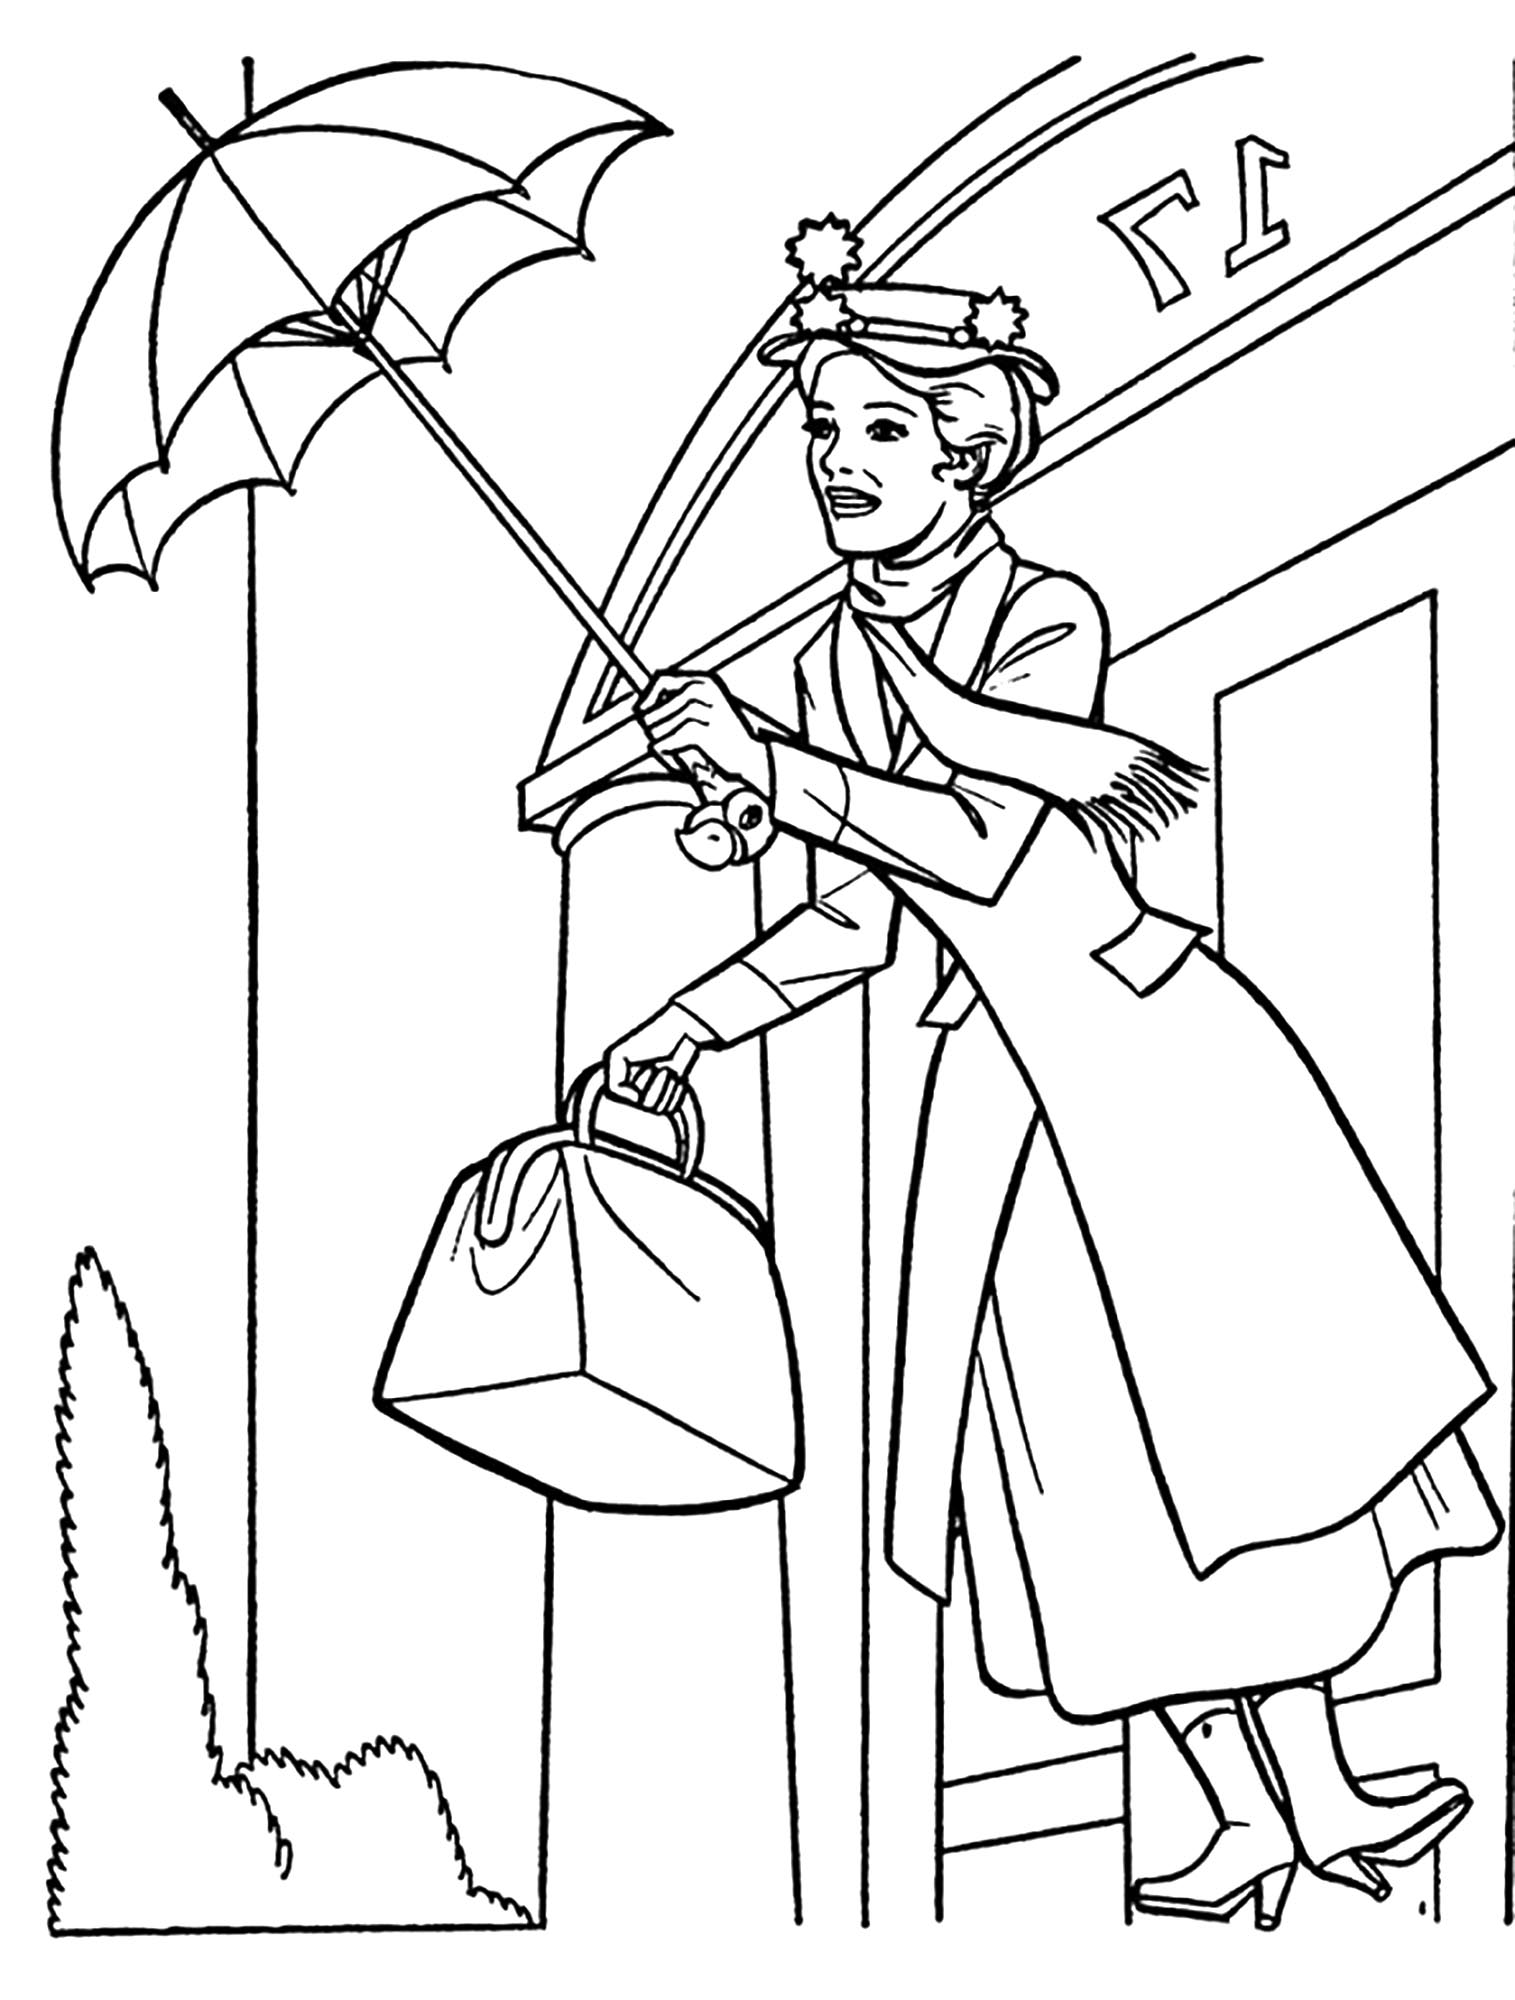 Simple Mary Poppins coloring page to print and color for free